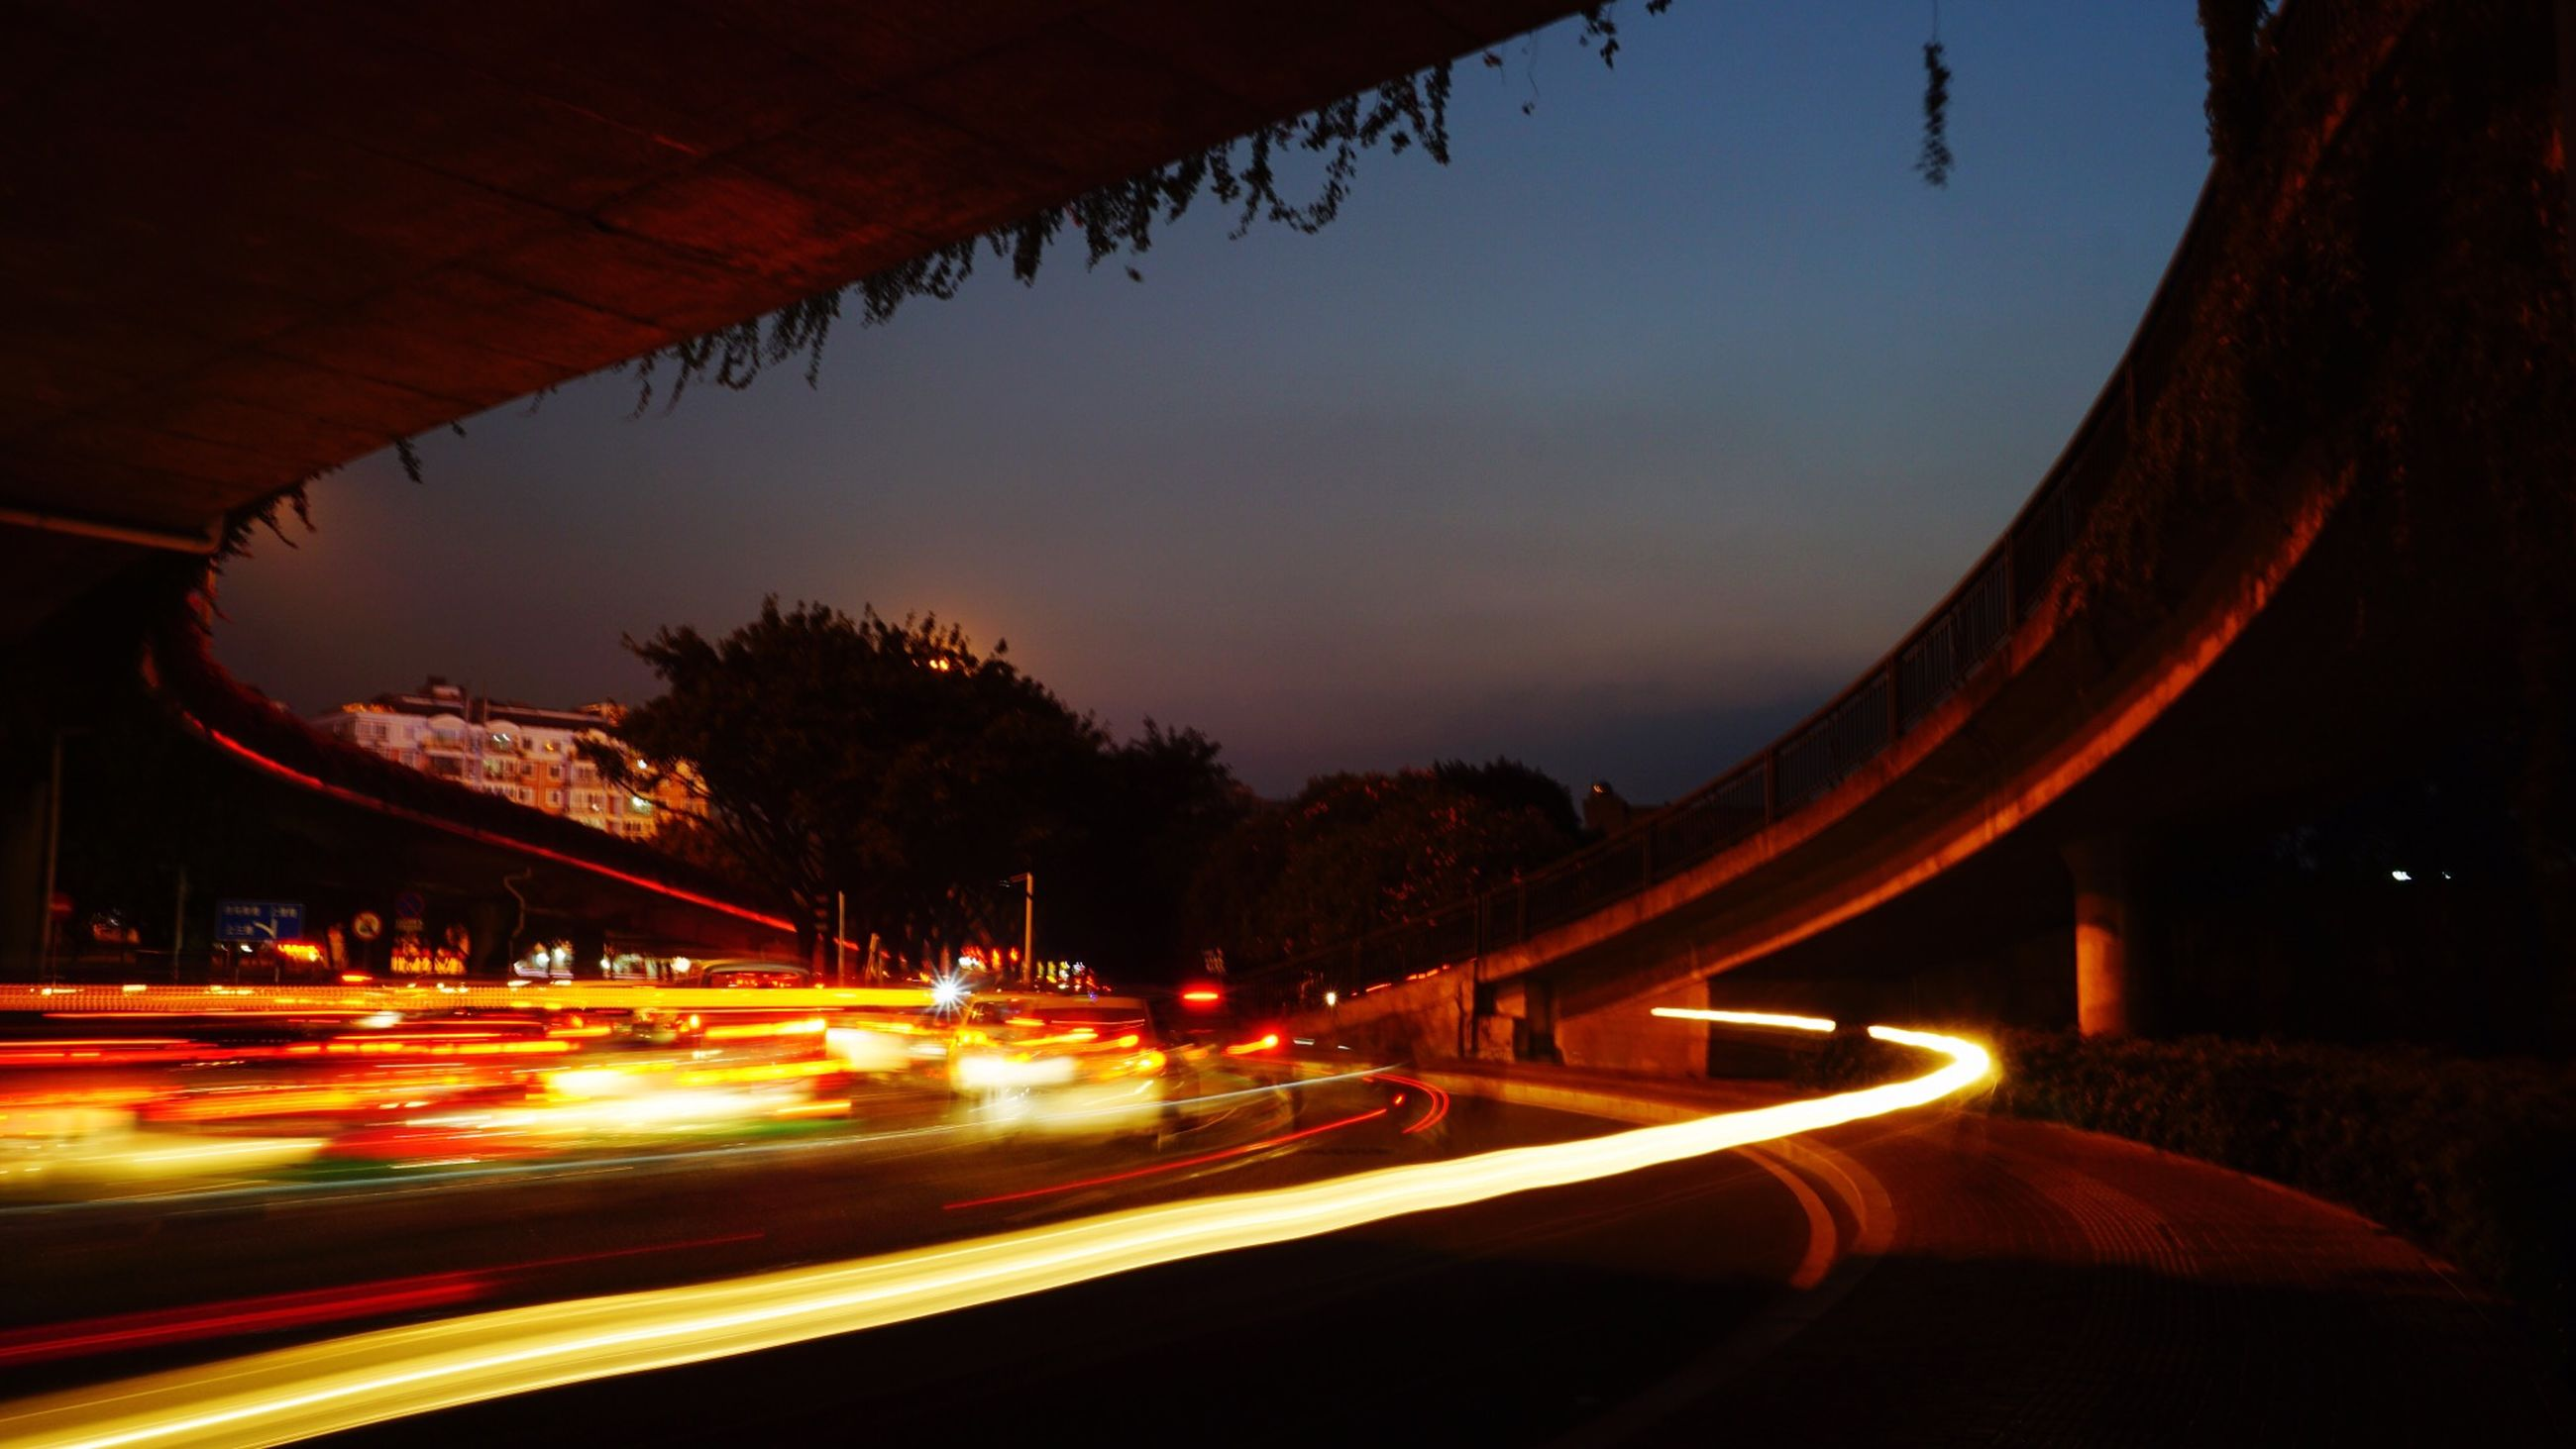 transportation, illuminated, road, car, night, light trail, long exposure, sky, tree, speed, land vehicle, motion, street, the way forward, mode of transport, blurred motion, road marking, on the move, red, traffic